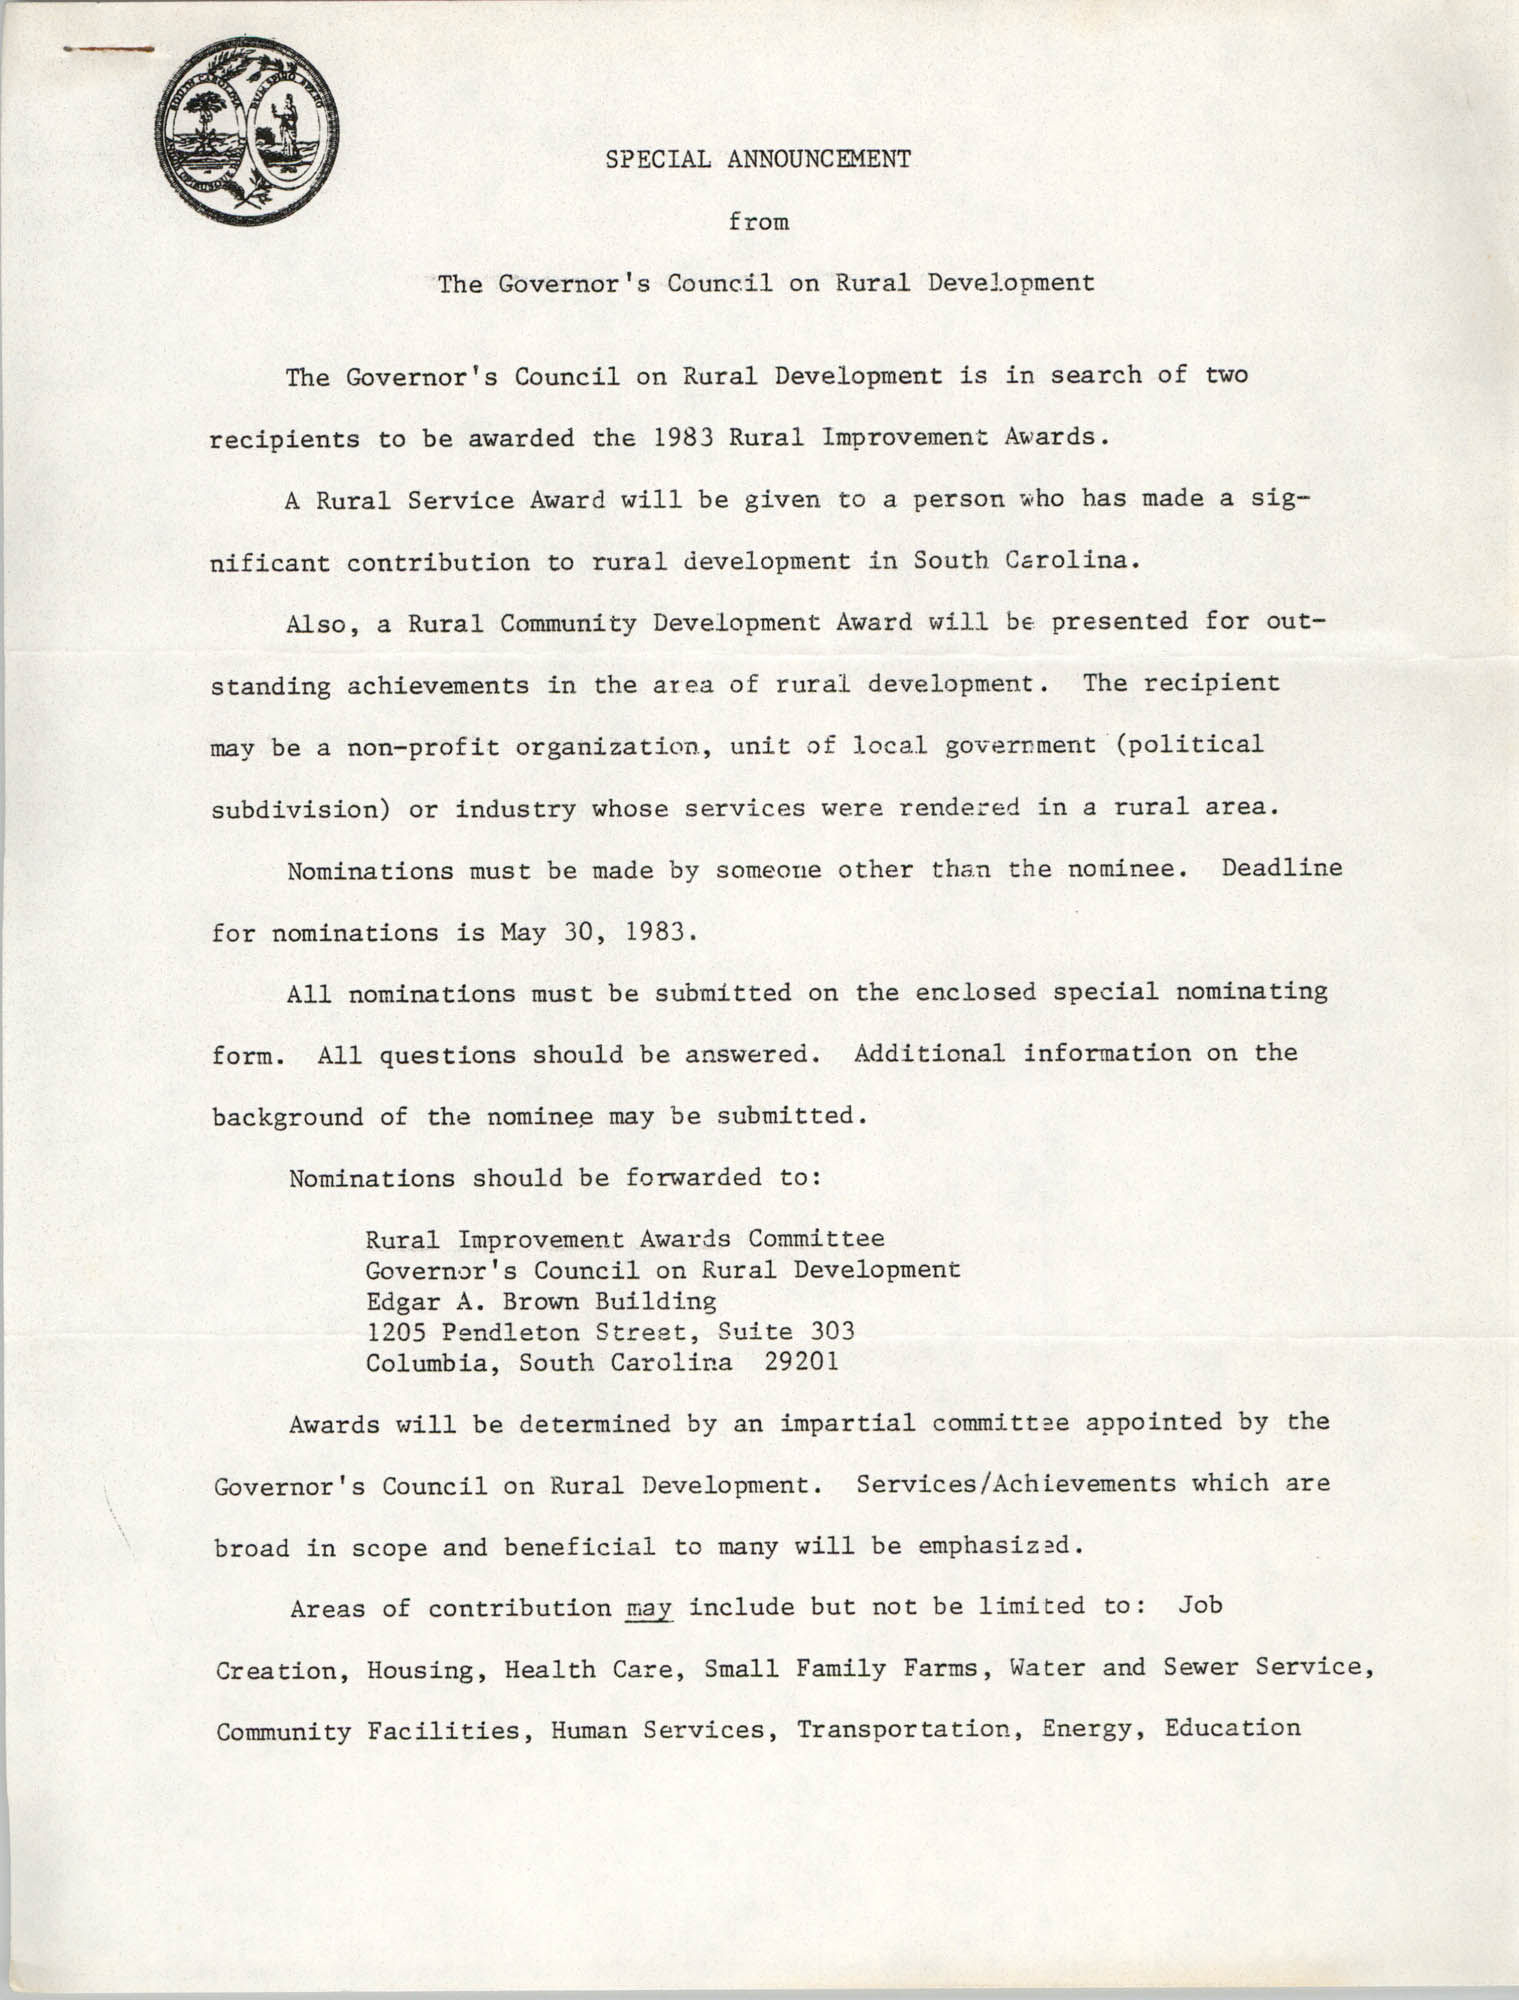 Special Announcement from The Governor's Council on Rural Development, 1983